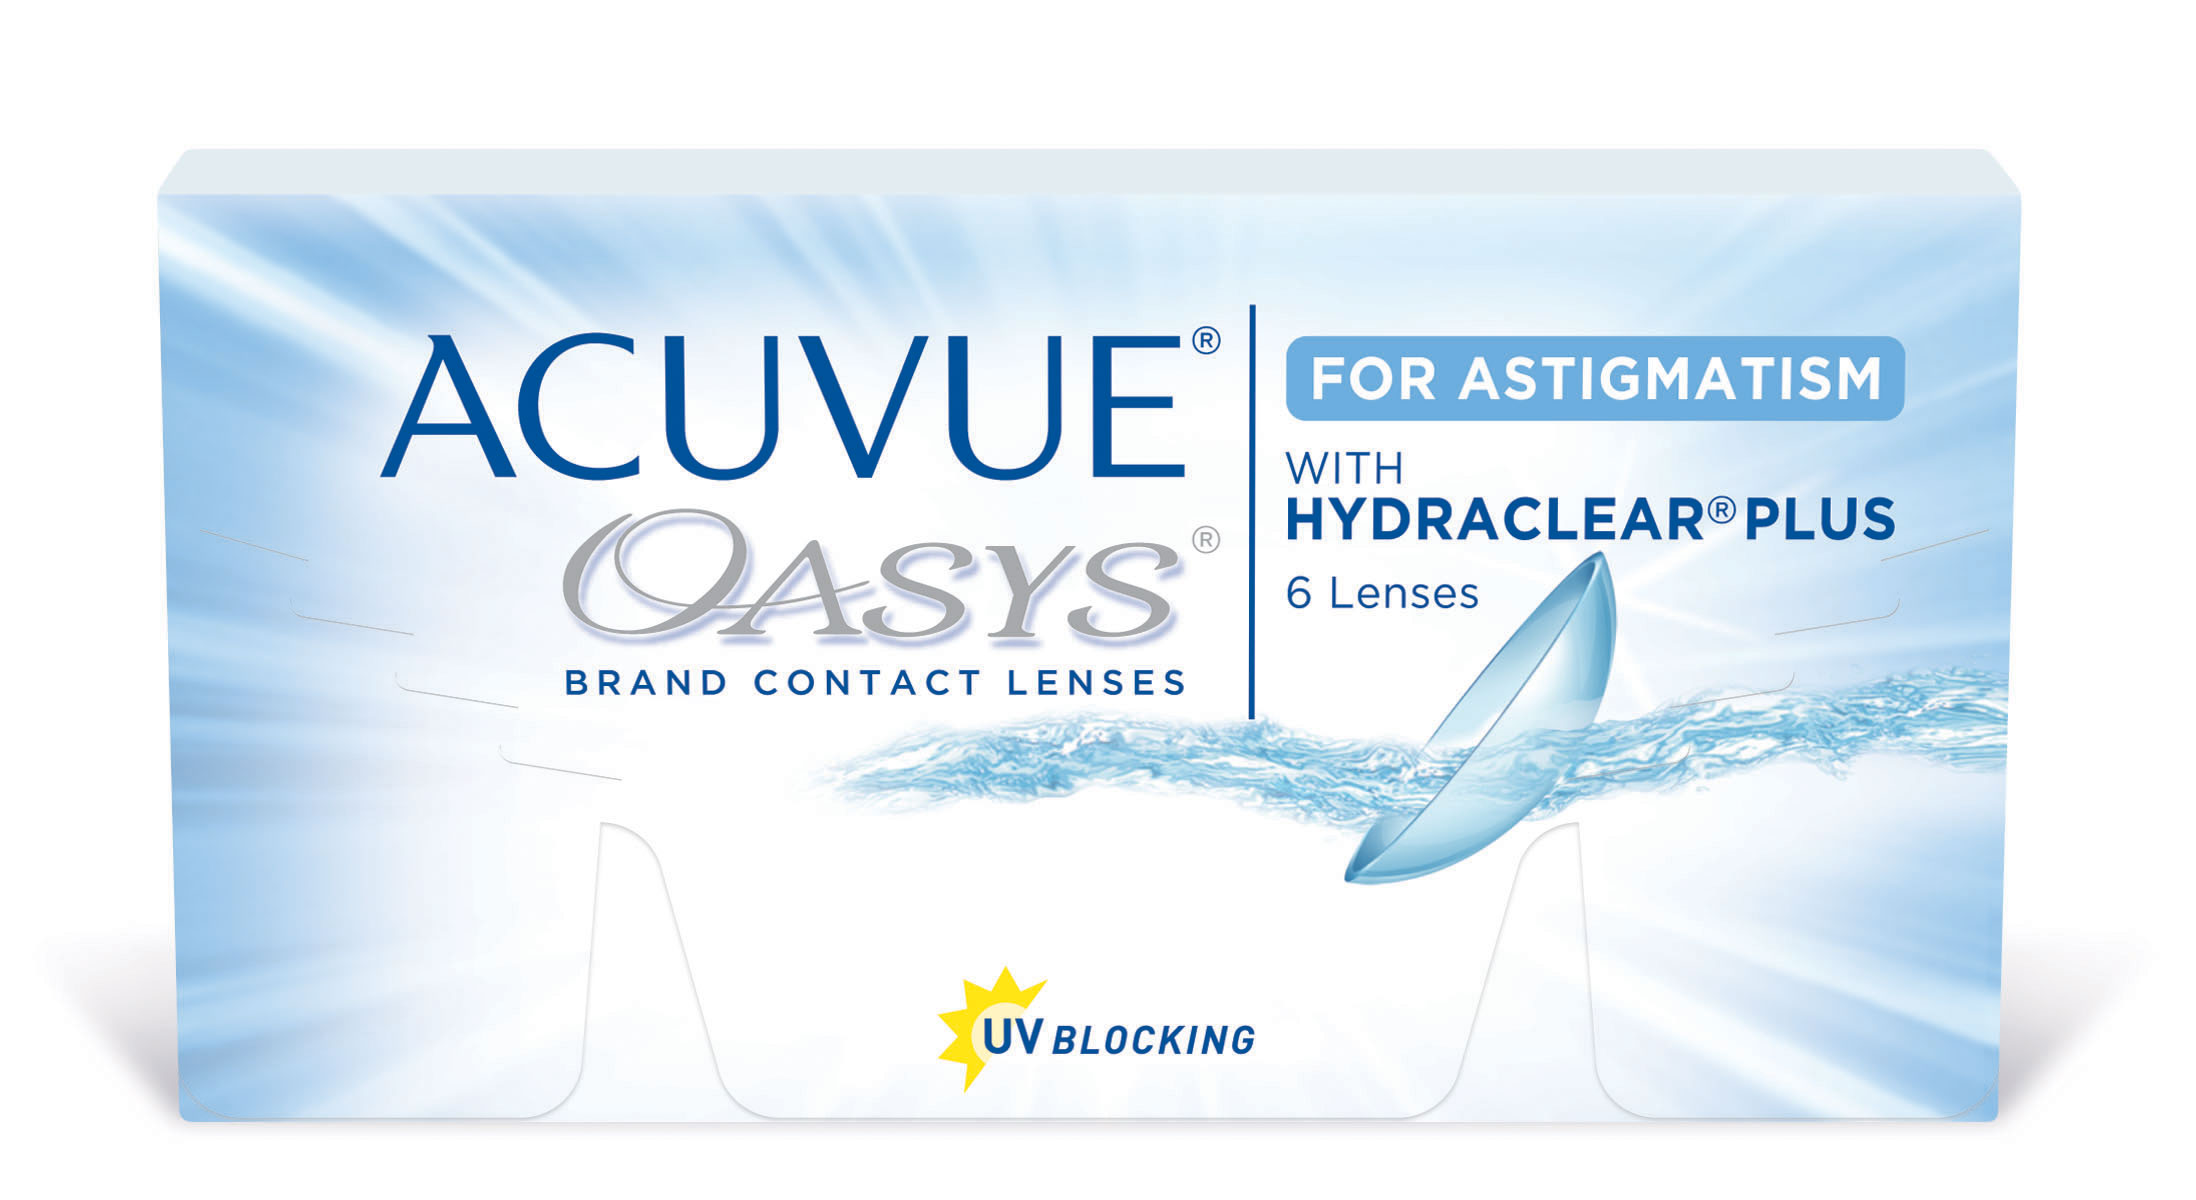 Johnson & Johnson контактные линзы Acuvue Oasys for Astigmatism/Диоптрии -4.50/Радиус 8.6/Цилиндр -2.25/Ось 170 fast shipping jm01 018 dc motor for treadmill johnson model t5000